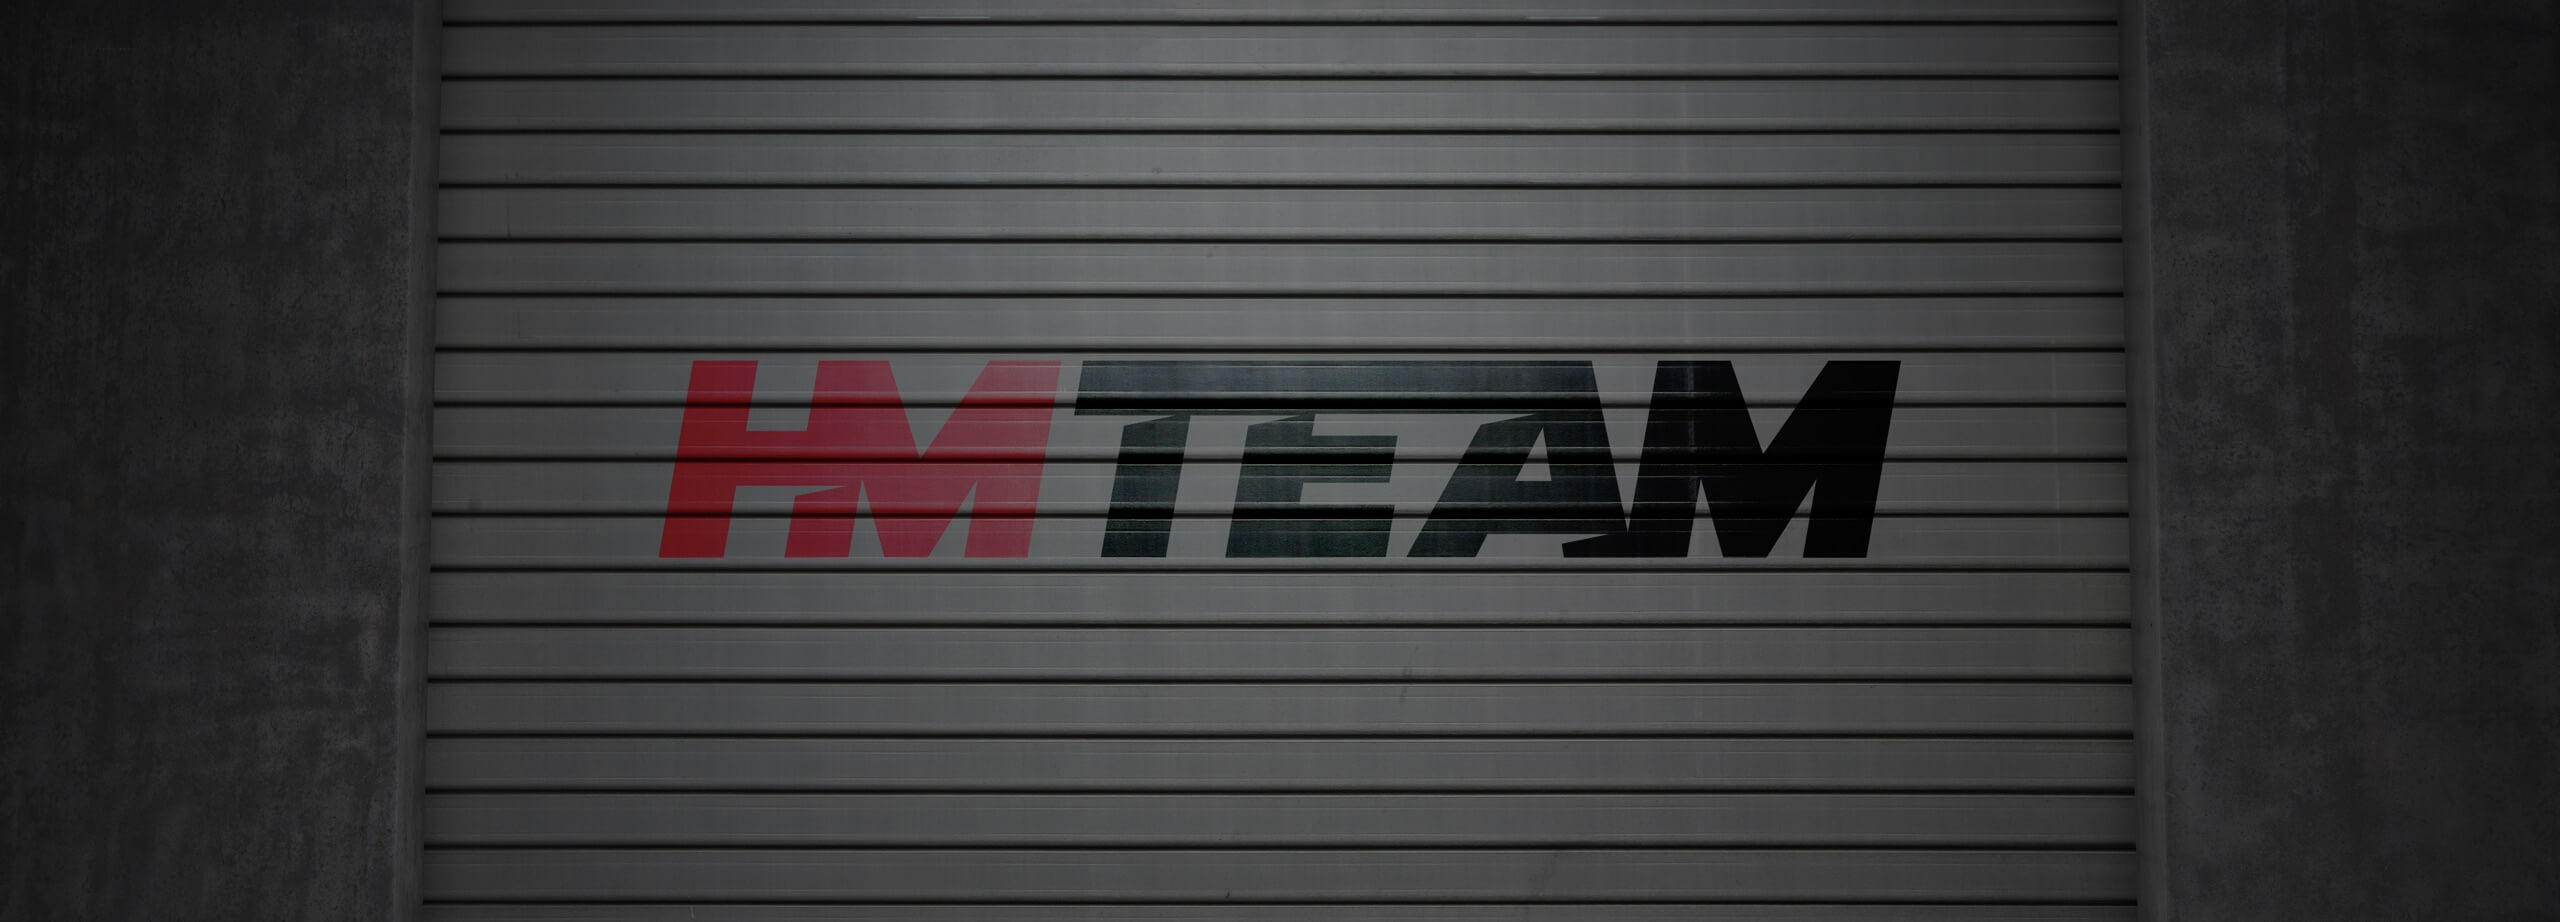 HM TEAM by _blank